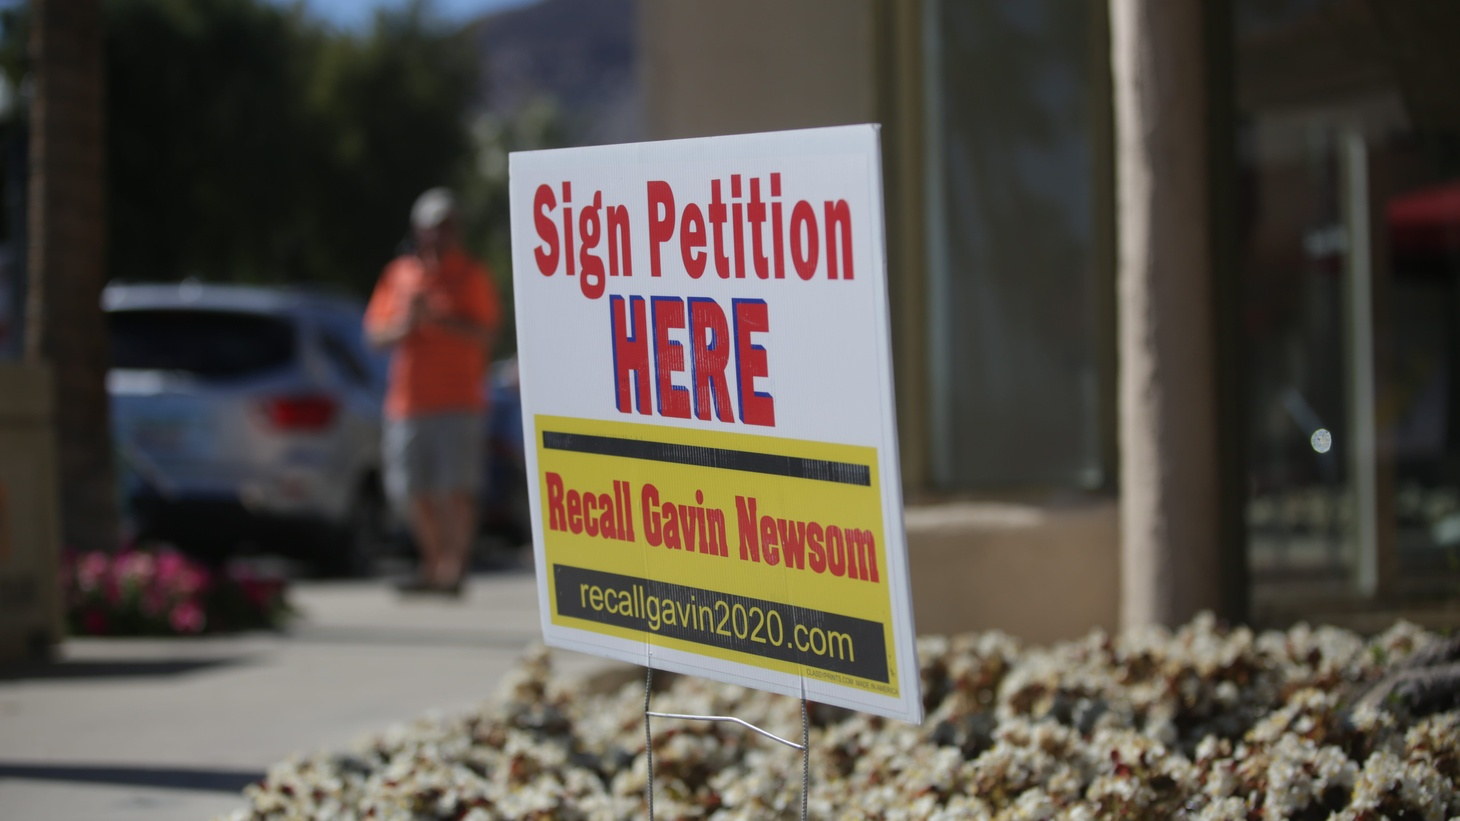 A sign appeals to passersby to recall Gov. Gavin Newsom, February 21, 2021, in Palm Desert, California.